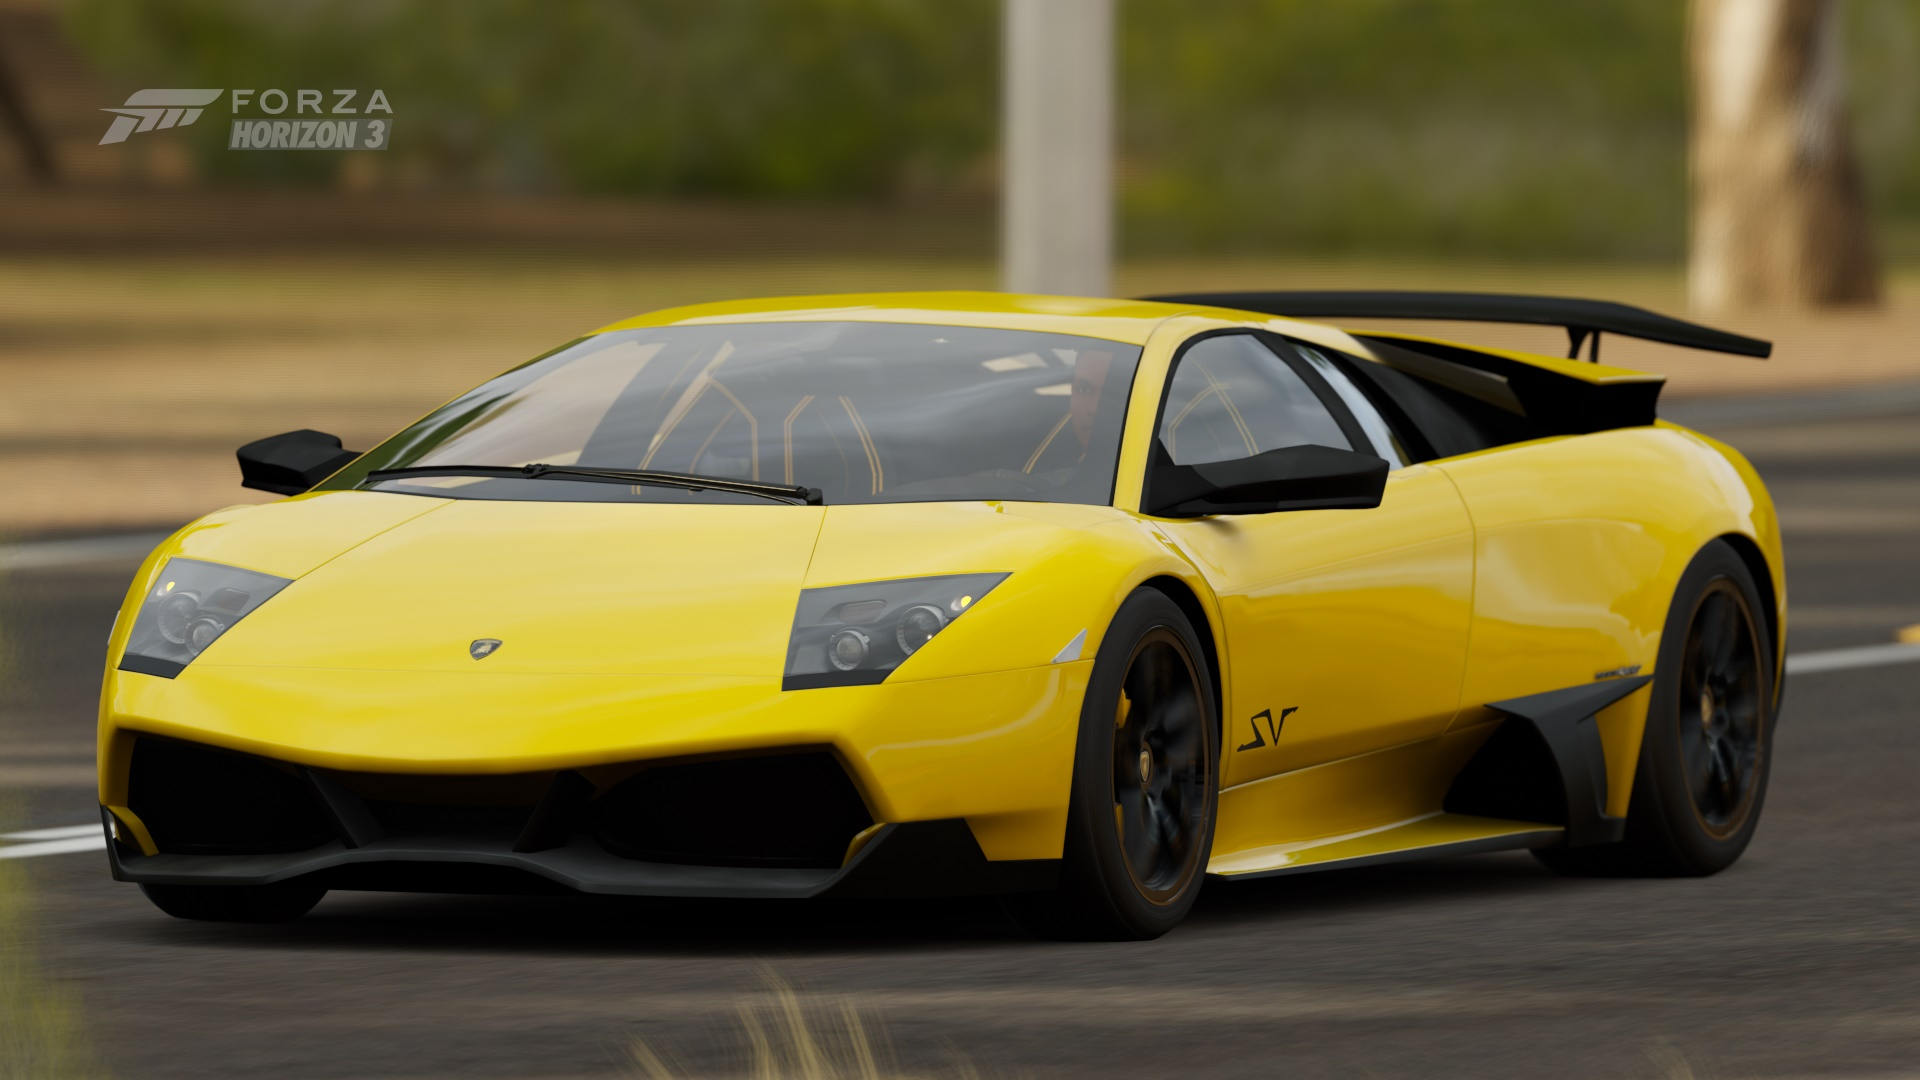 2010 Lamborghini Murcielago Lp 670 4 Sv Hd Wallpaper Background